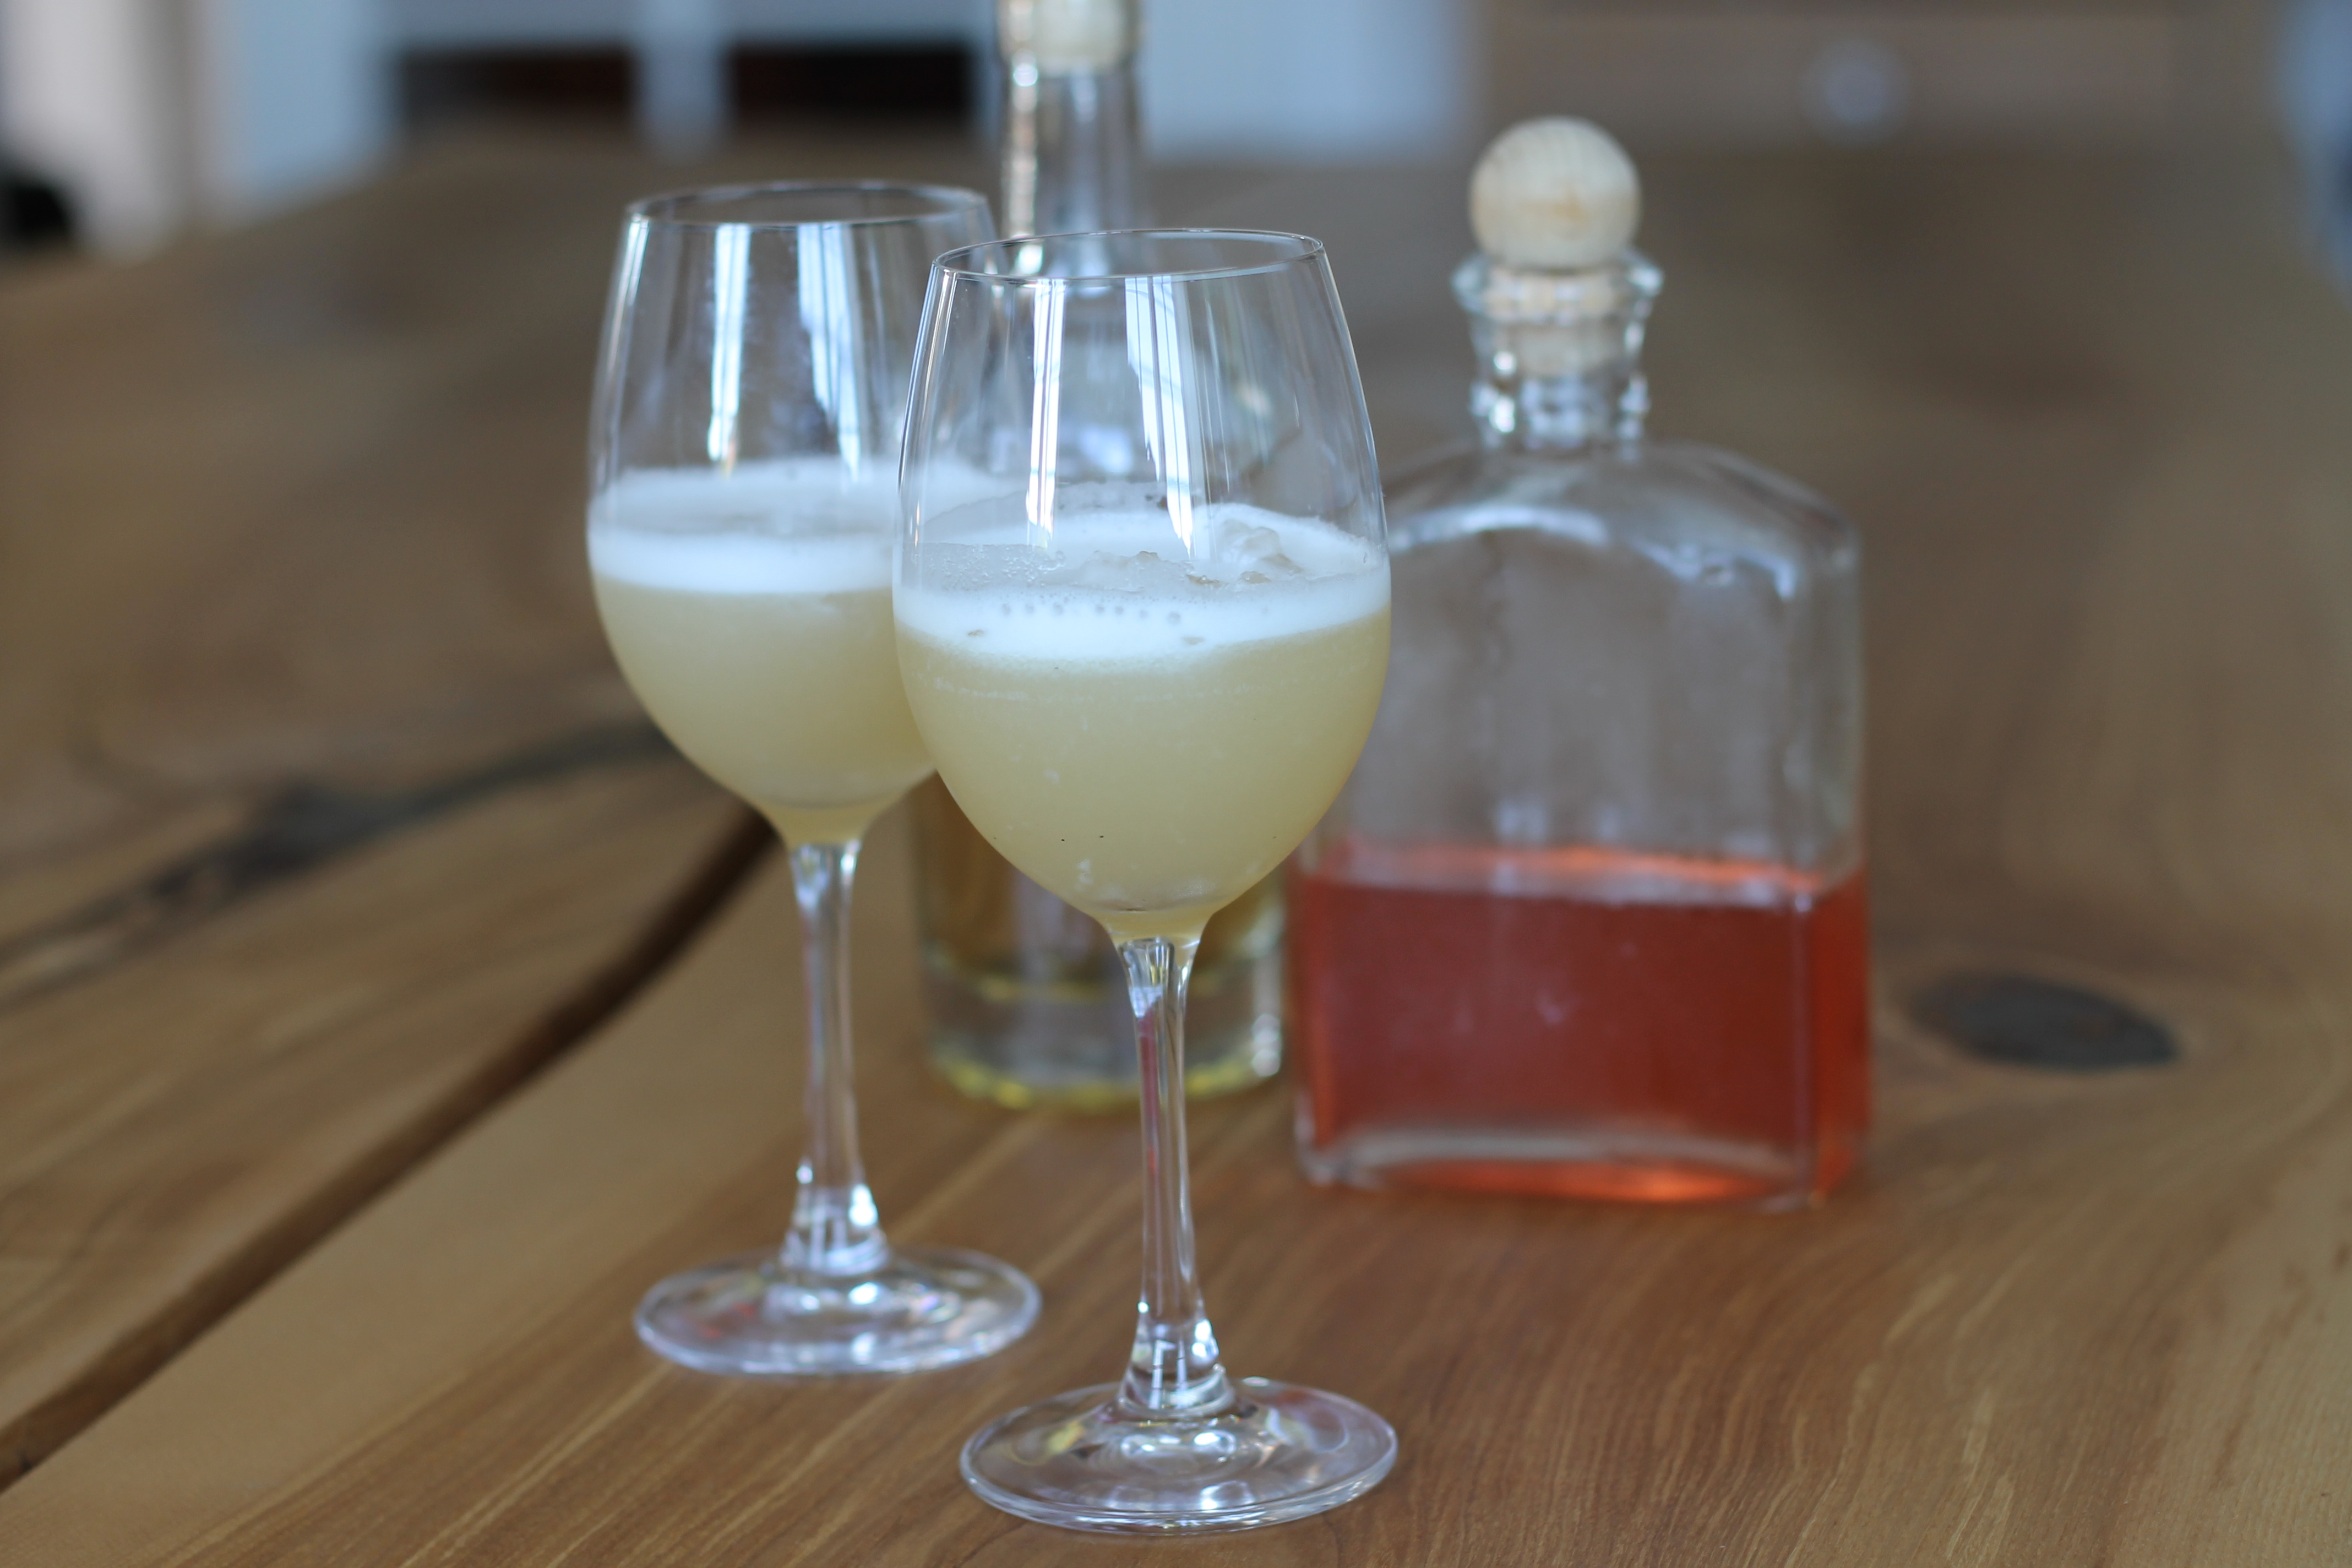 Rabarber-whisky sour